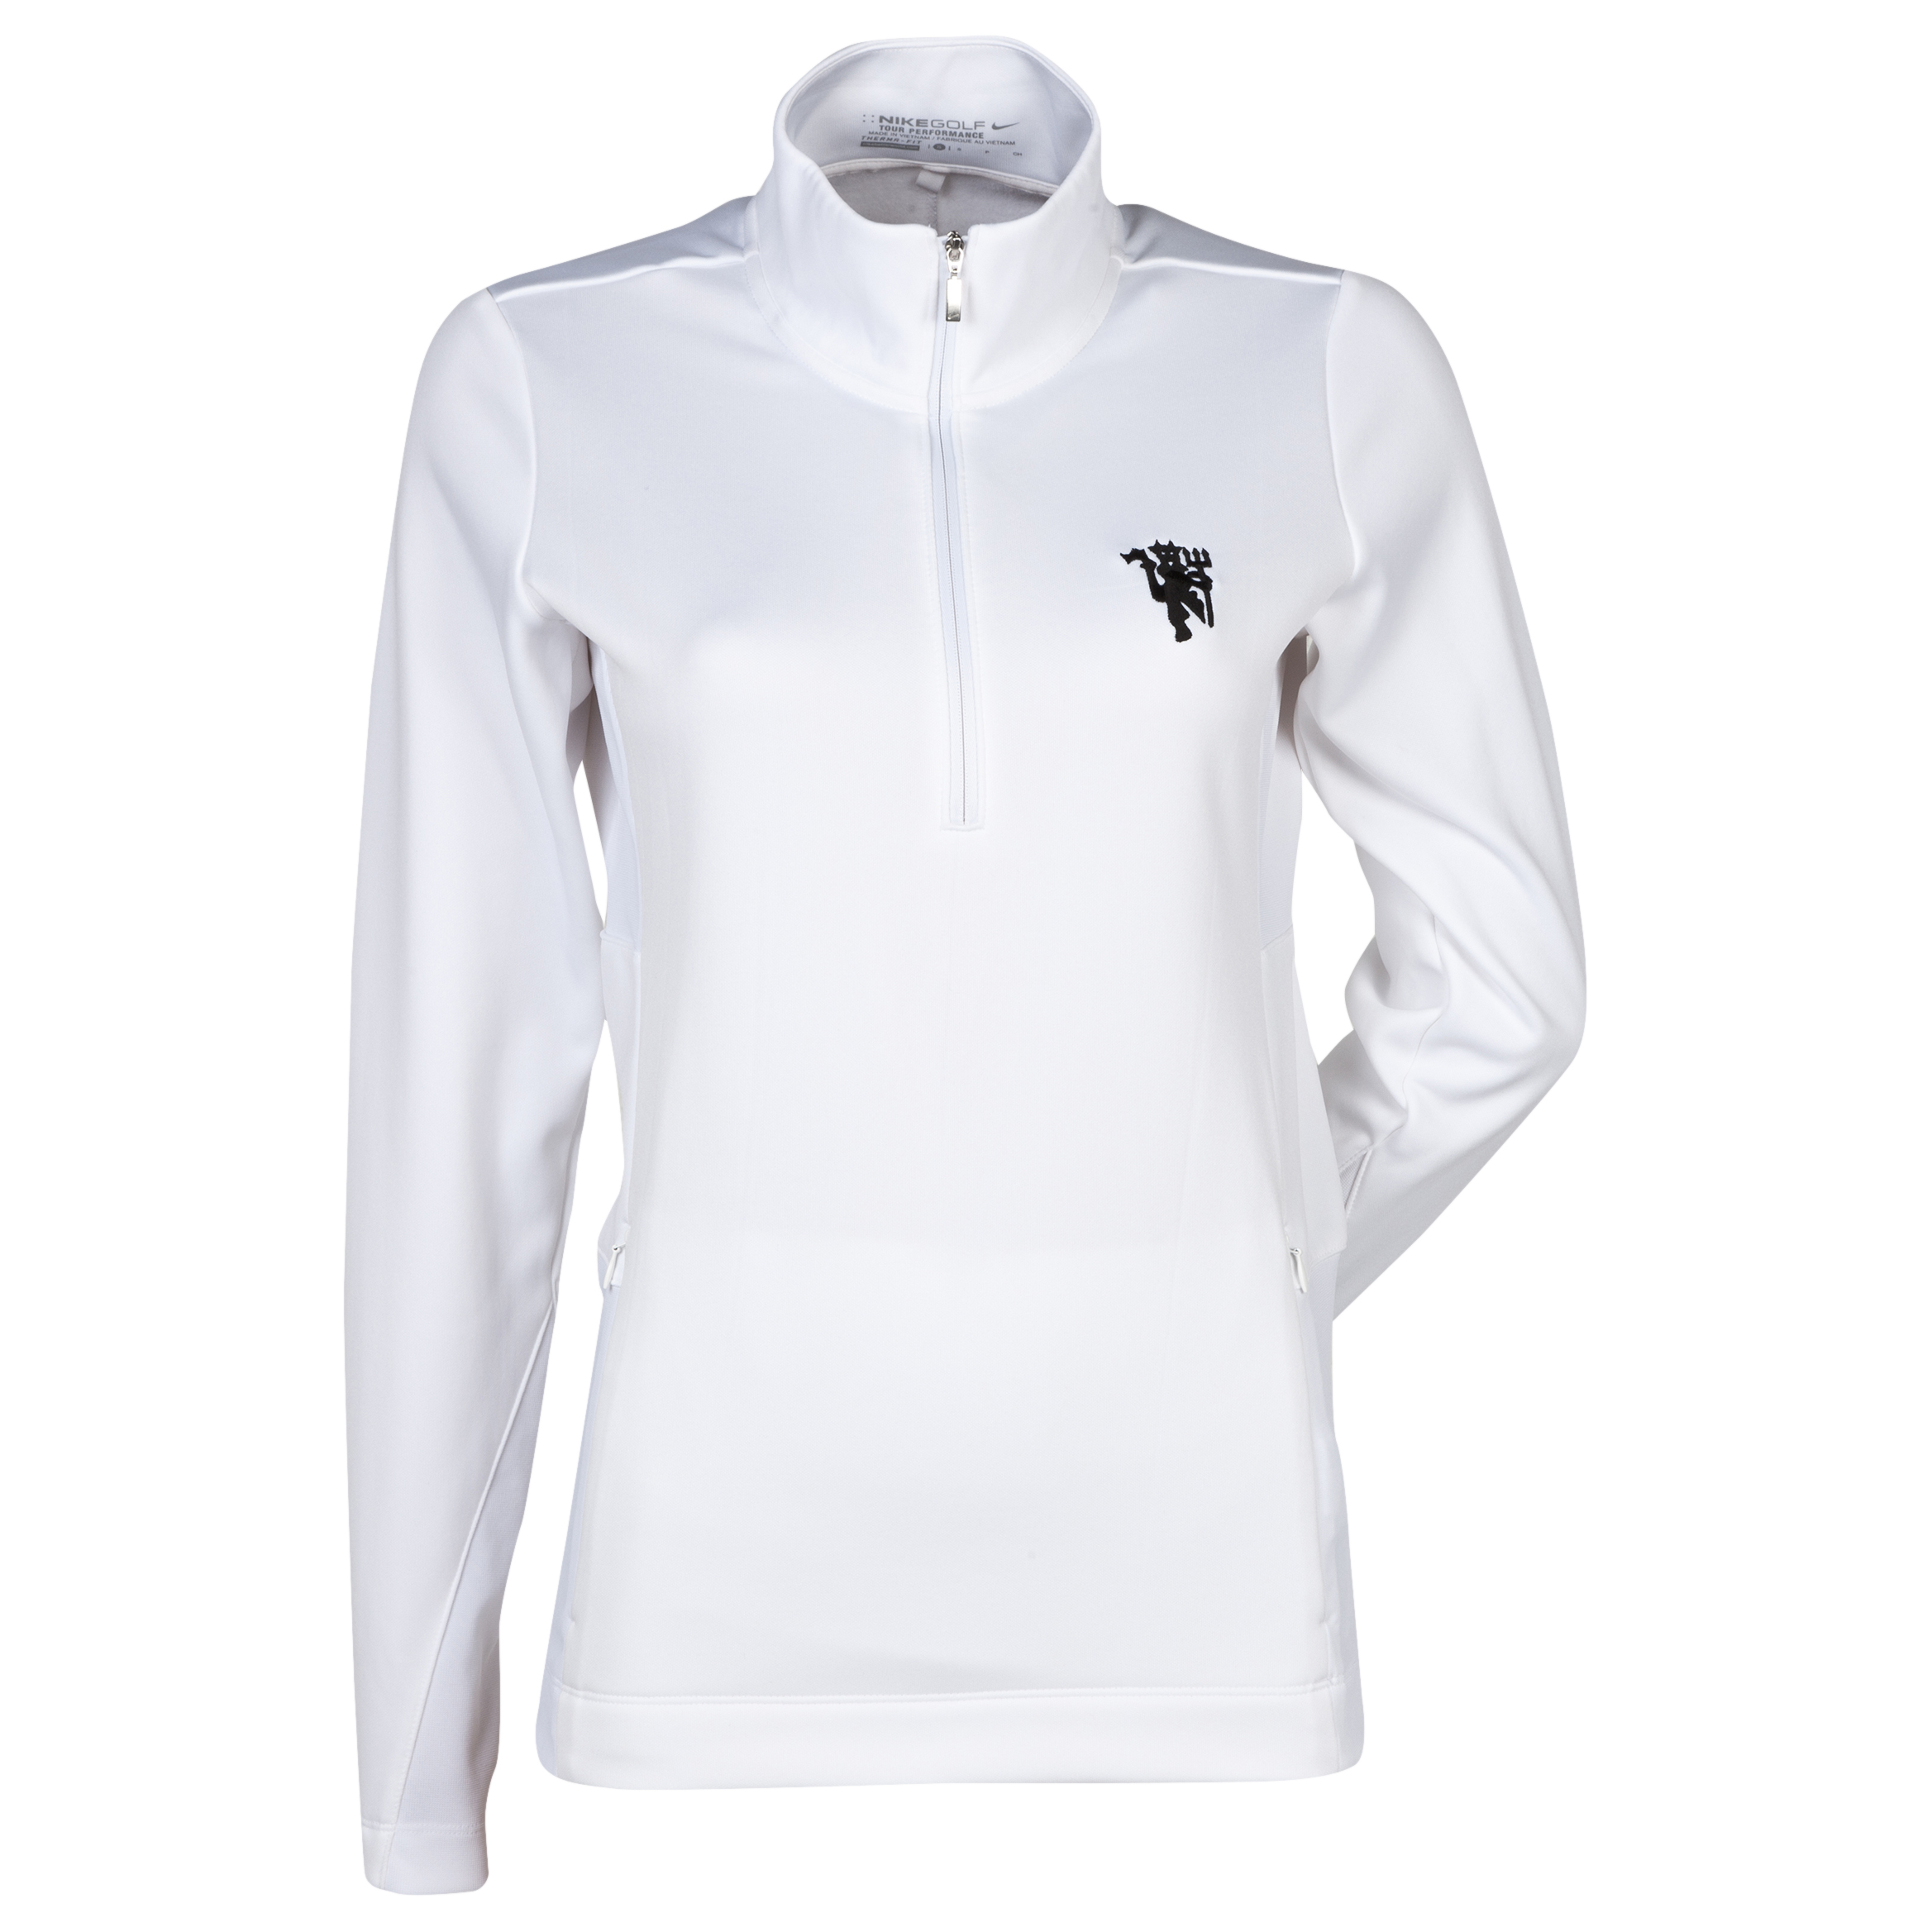 Manchester United Thermal 1/2 Zip Top - White/Black - Womens White